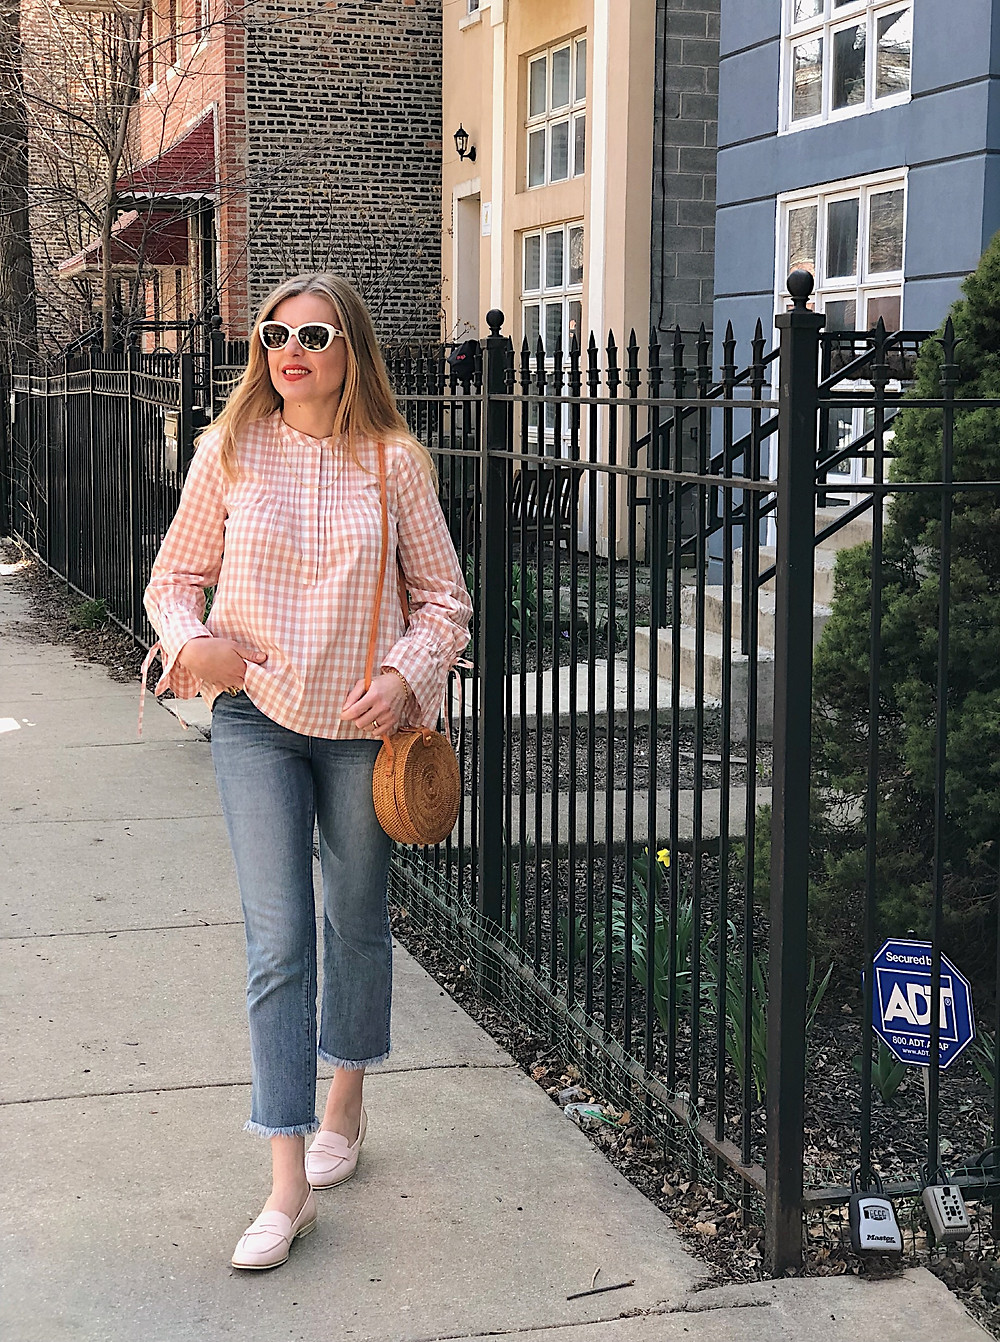 blond woman, blush gingham top, white sunglasses, jeans, straw bag